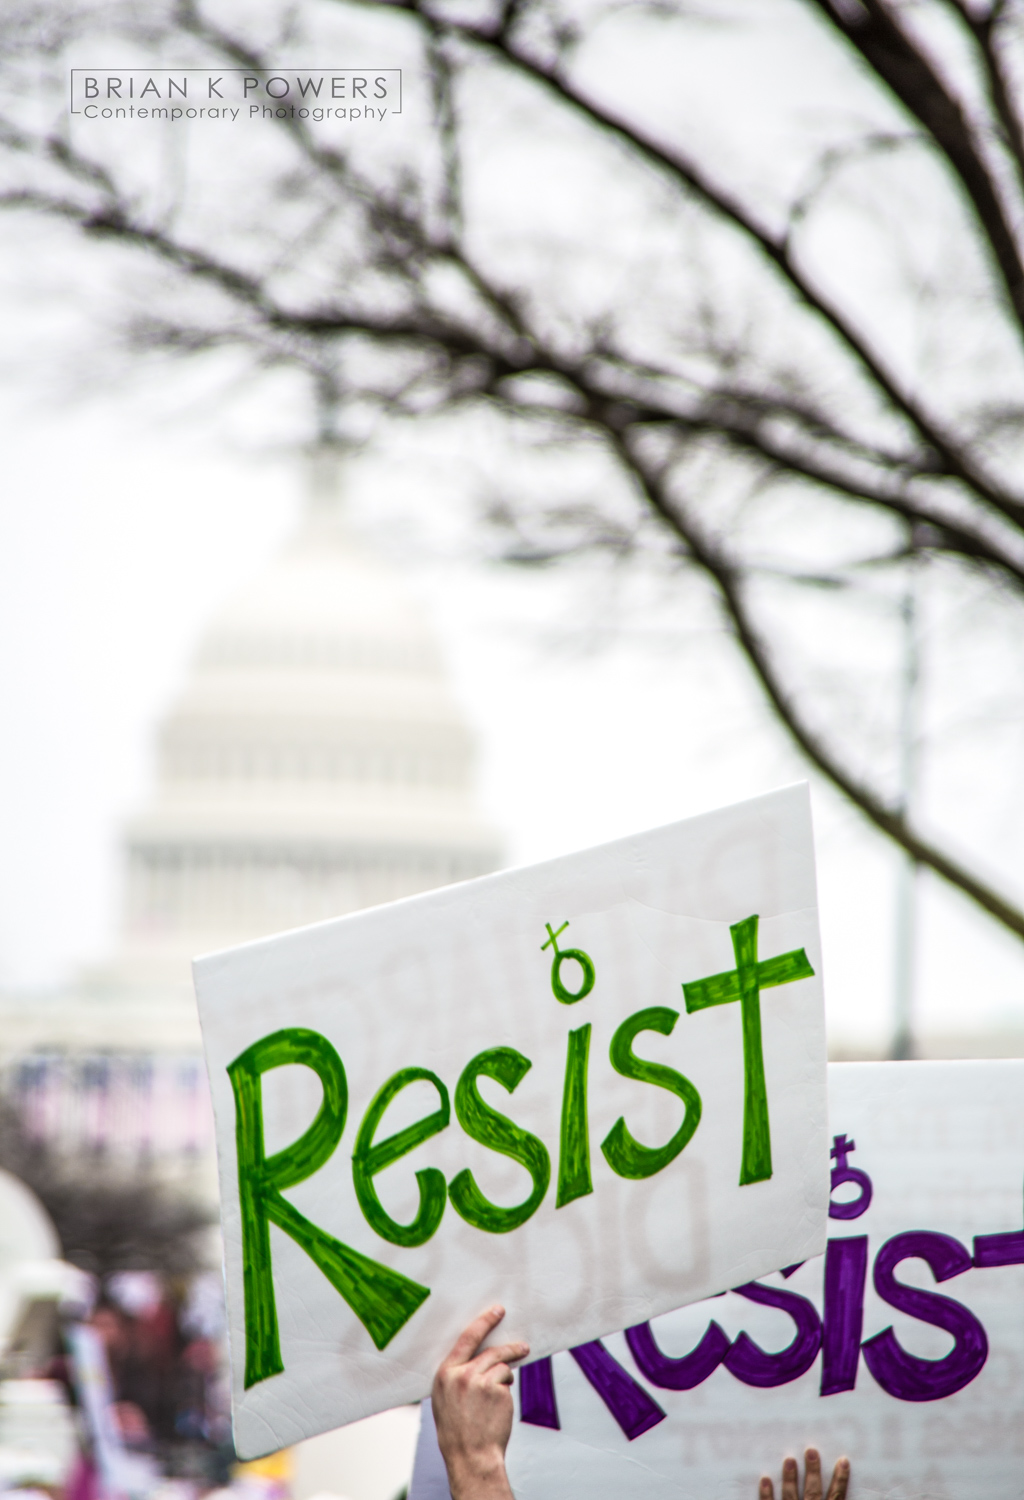 Womens-march-on-washington-2017-Brian-K-Powers-Photography-0097.jpg